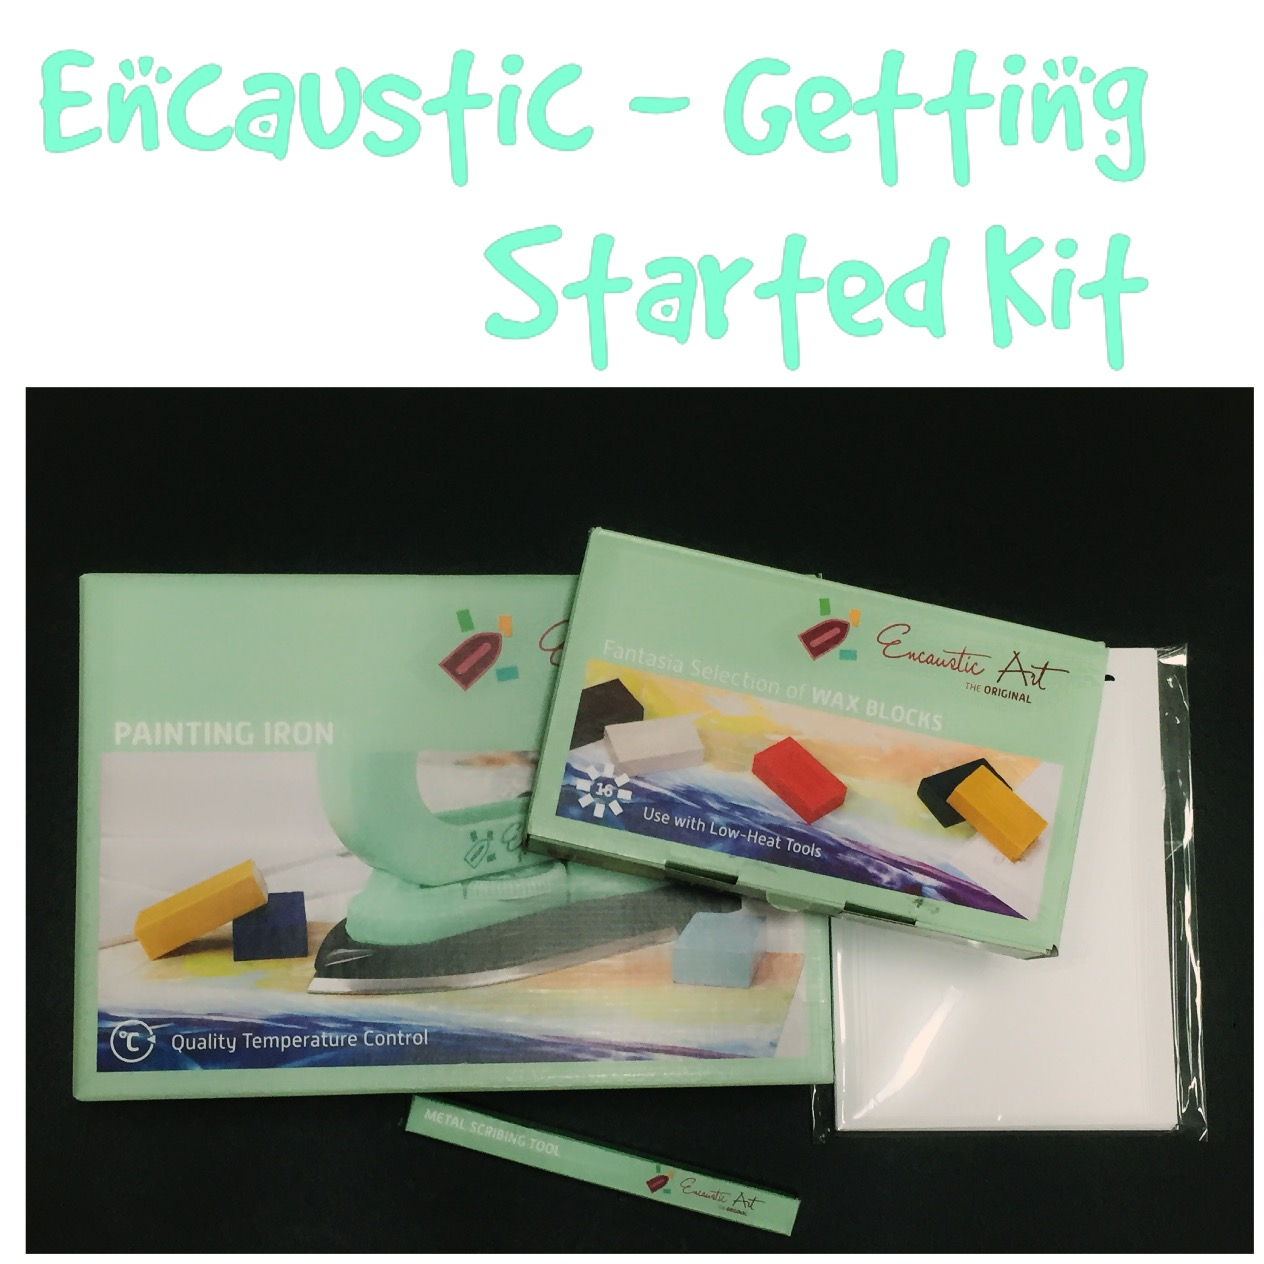 Encaustic Iron - Getting Started Kit